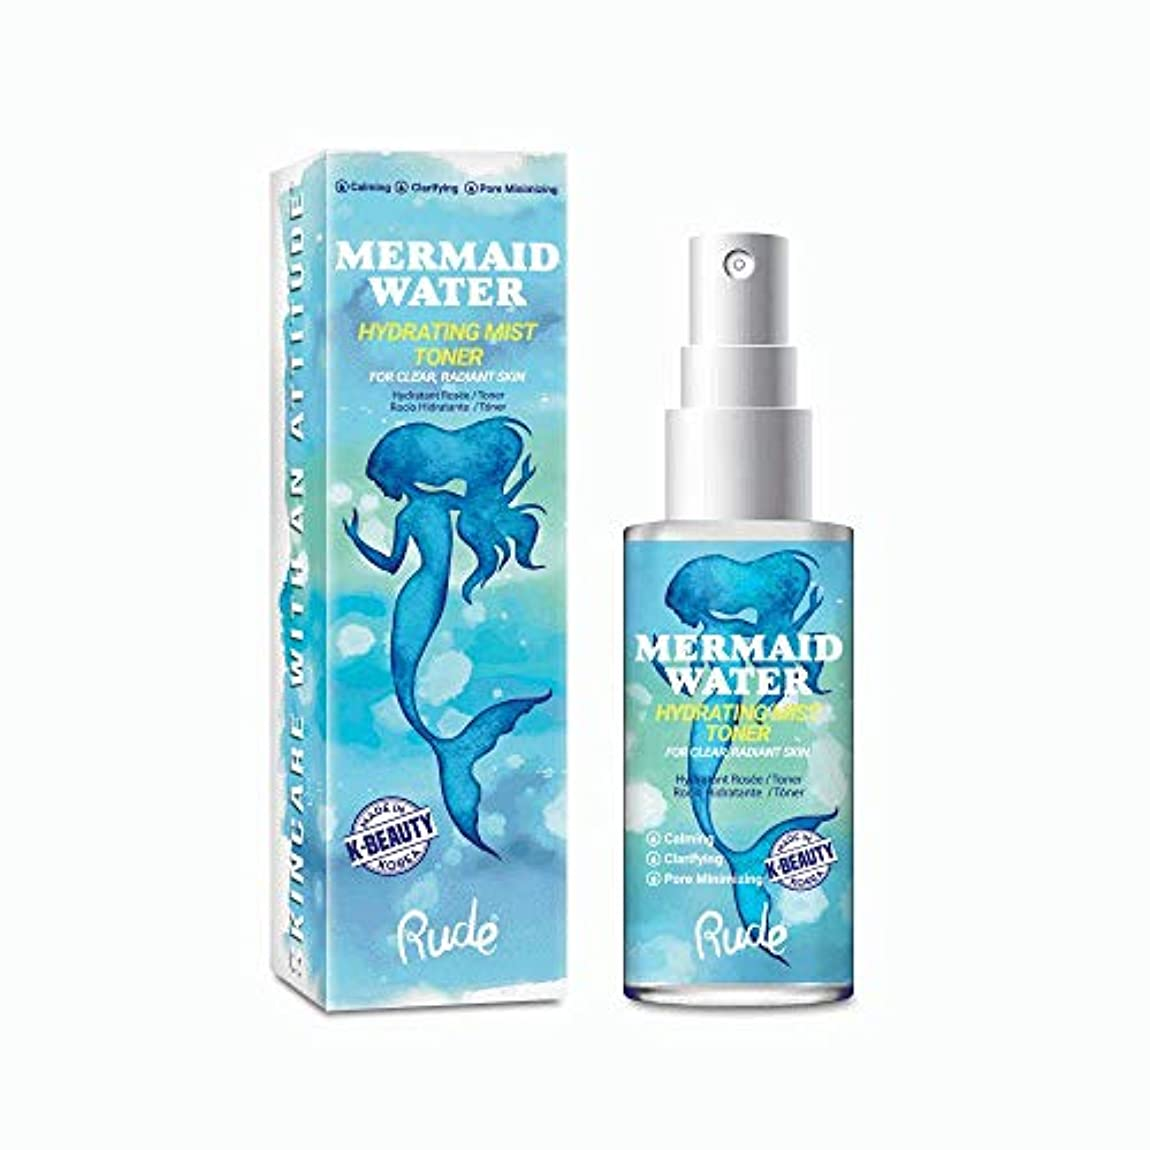 年金利得アクティブ(6 Pack) RUDE Mermaid Water Hydrating Mist Toner (並行輸入品)